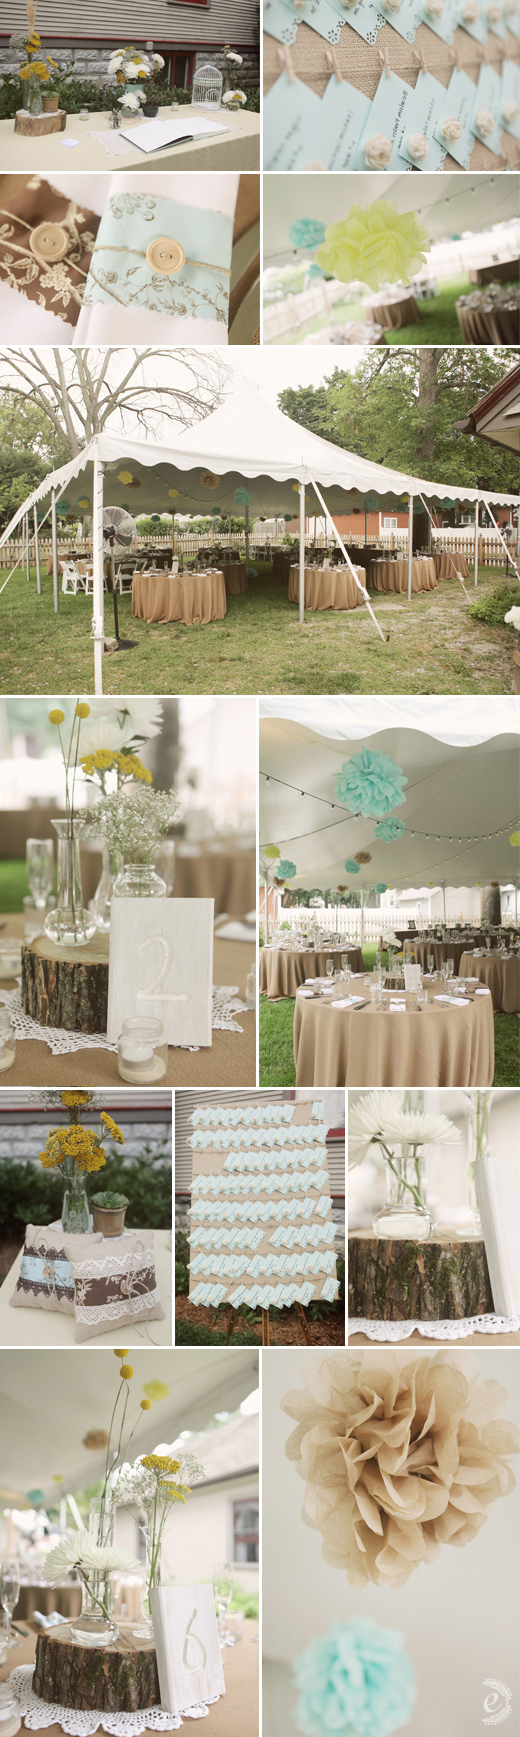 backyard wedding reception robin's egg blue yellow burlap pom-poms